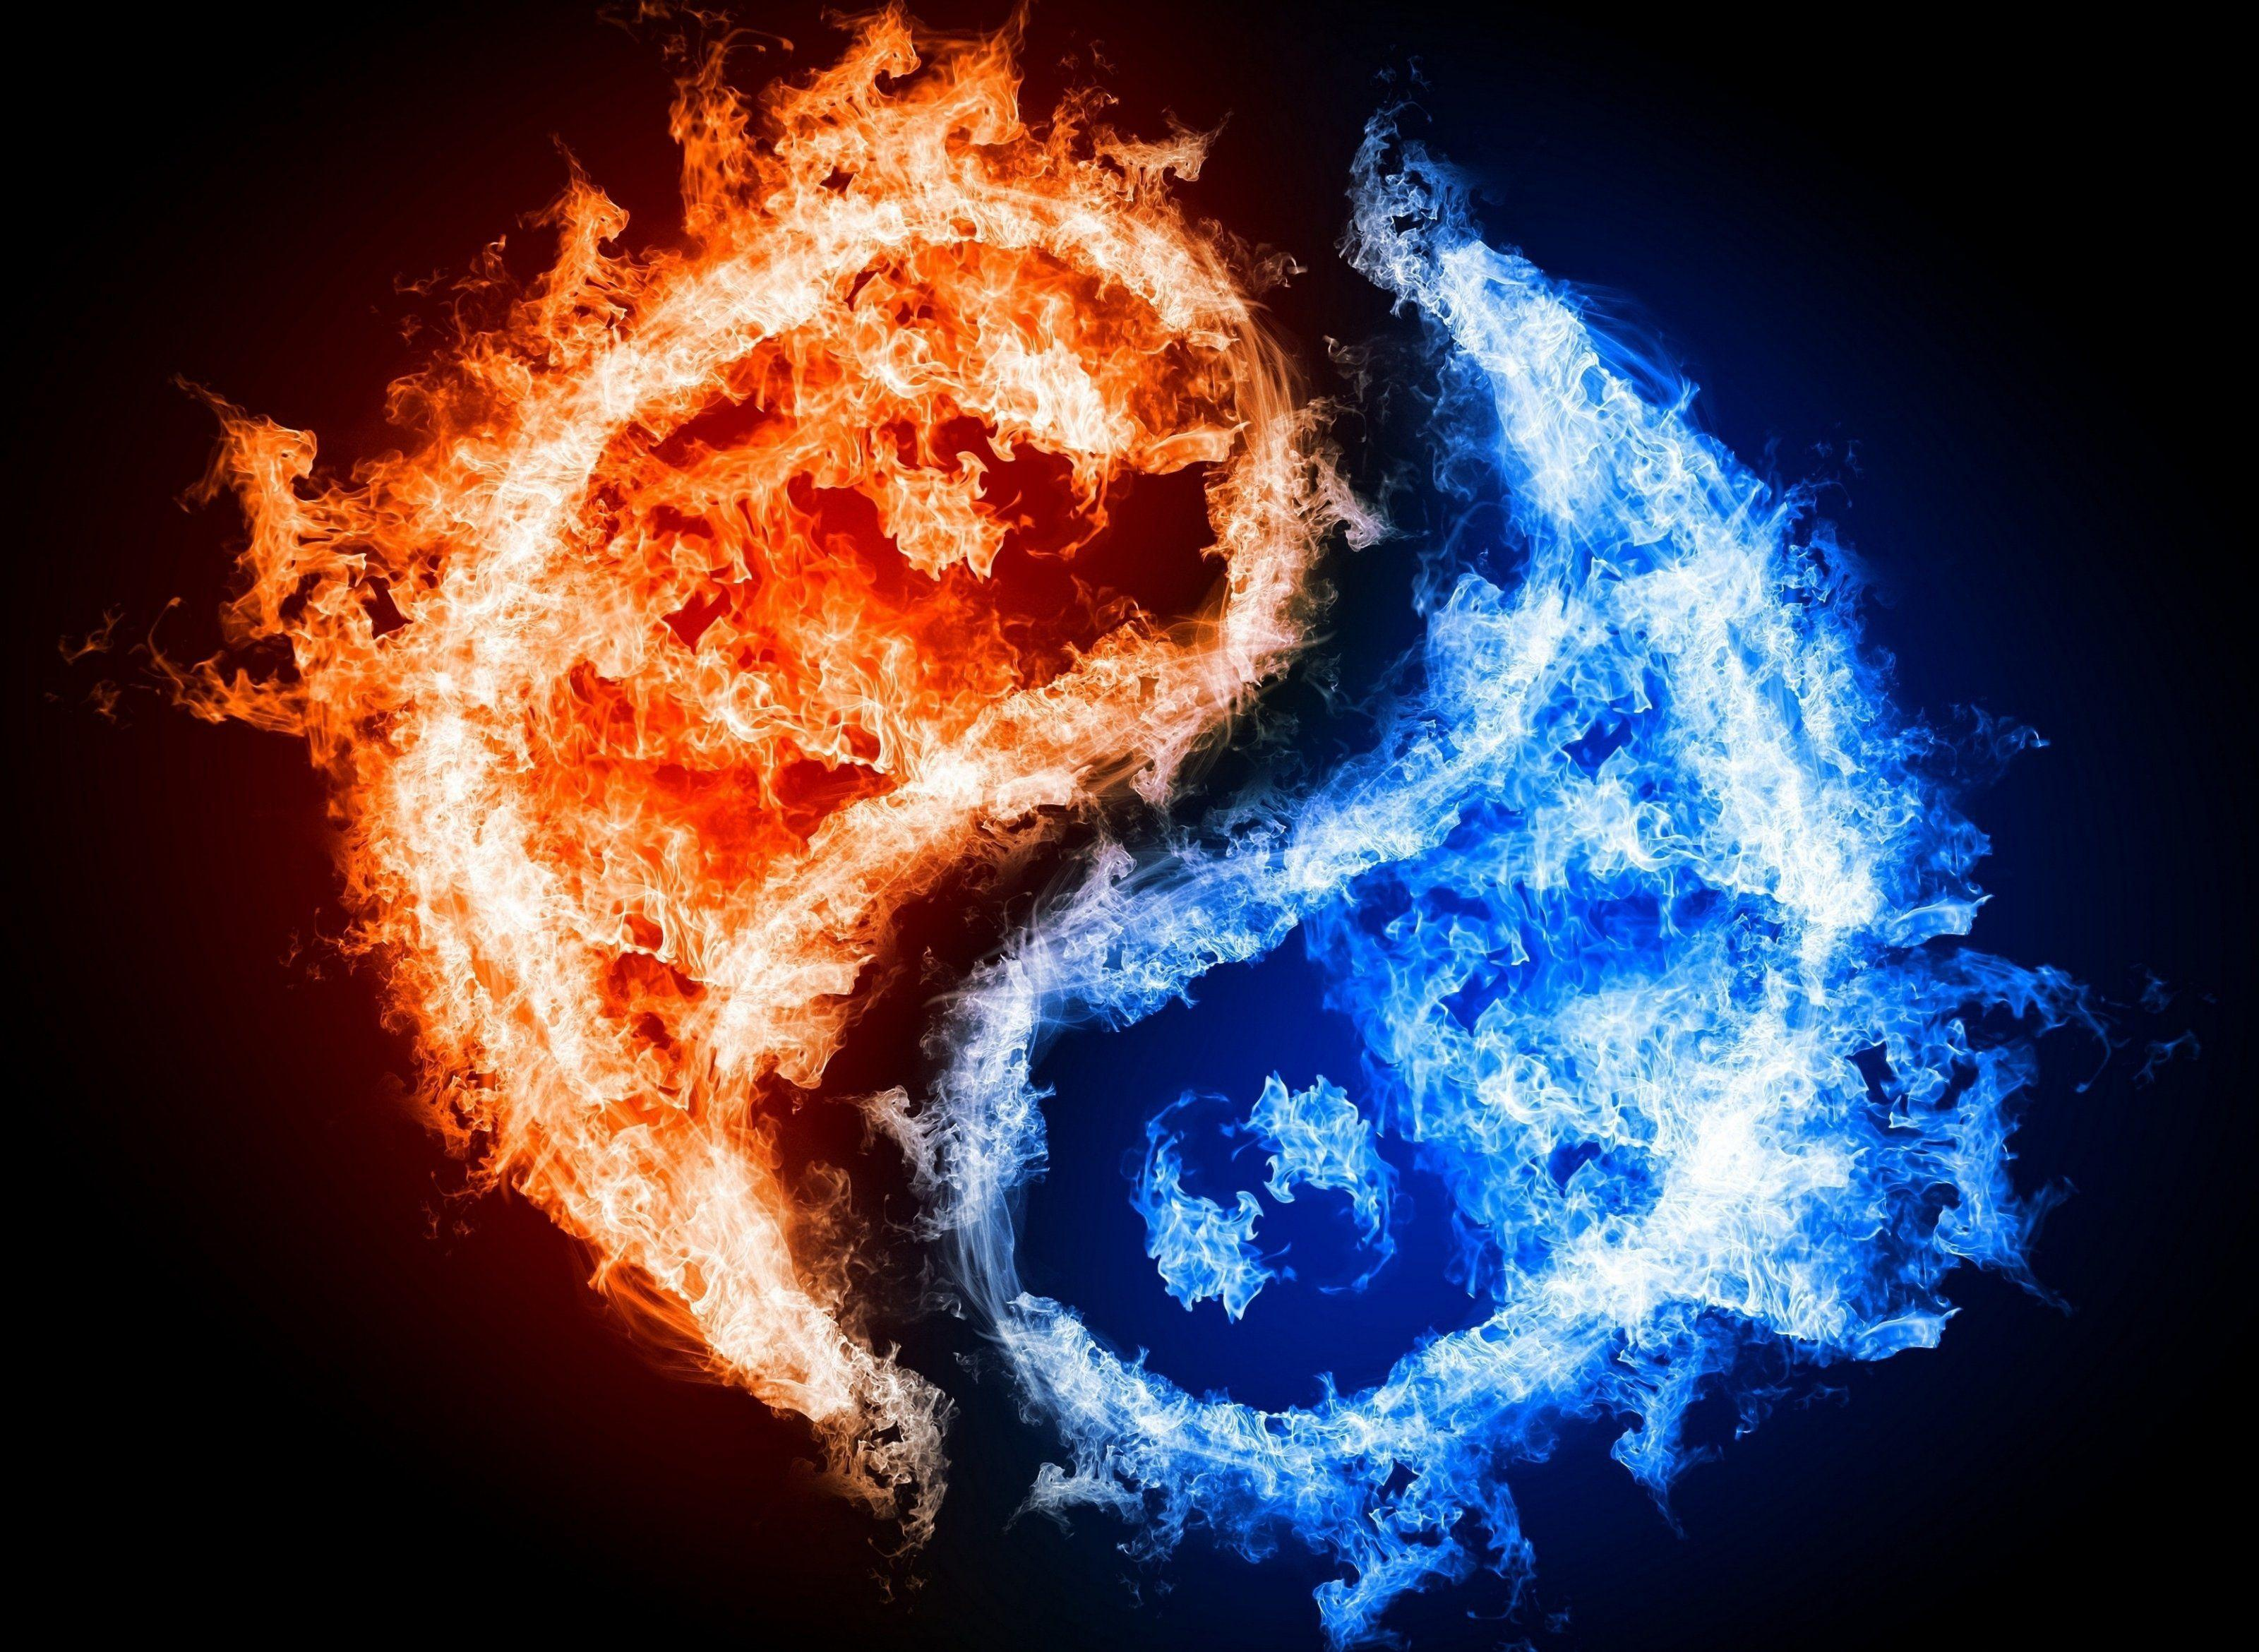 Yin Yang Fire Water Wallpapers